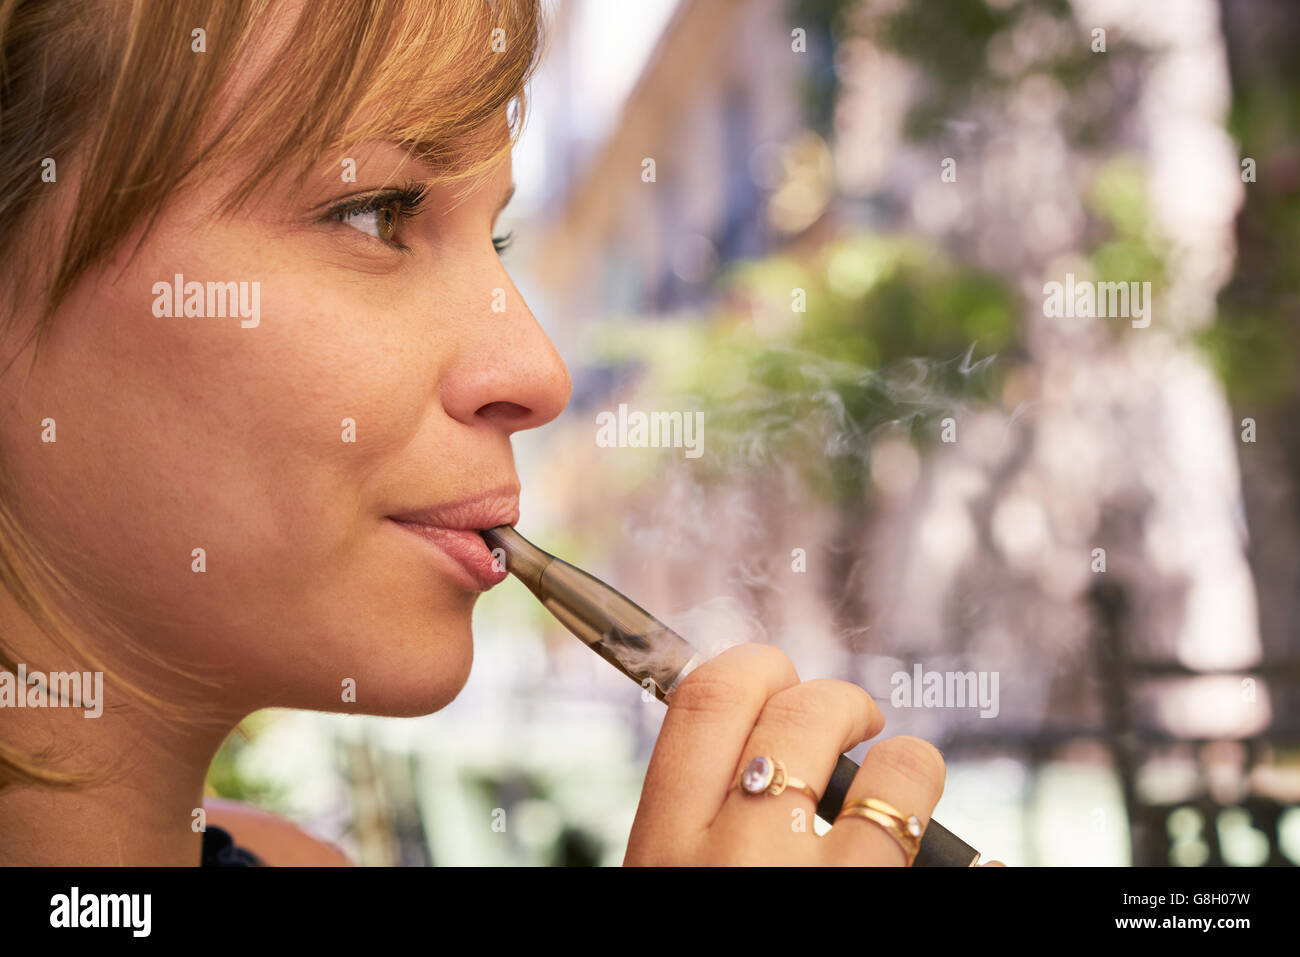 Young woman having fun and relaxing outdoors, smoking electronic cigarette e-cig. Closeup of face and copy space - Stock Image